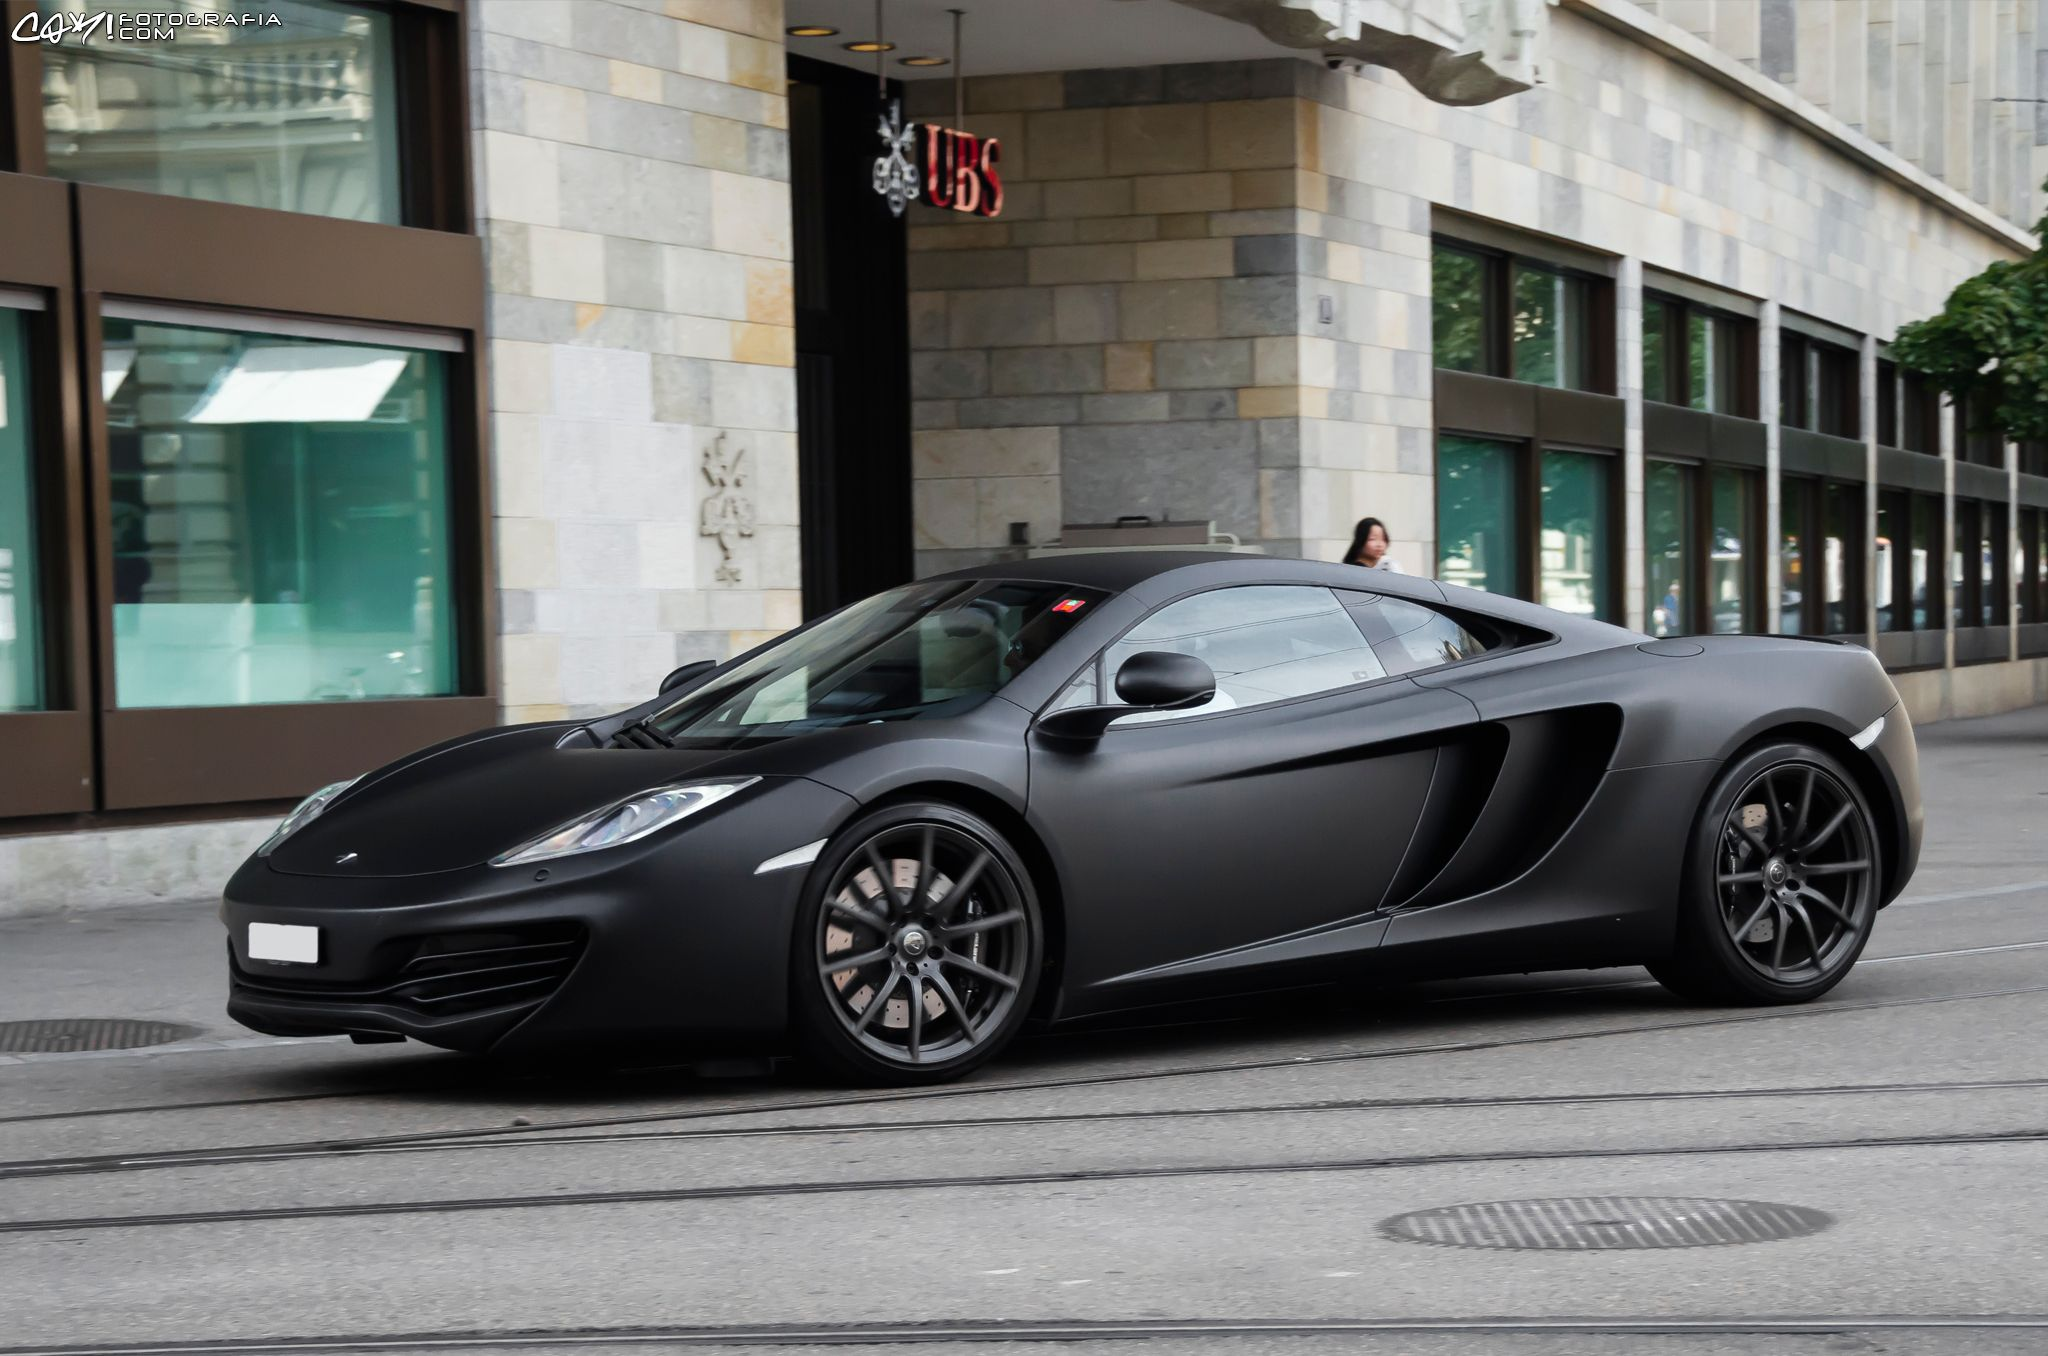 These Are The Sickest Cars Made By McLaren, Ranked